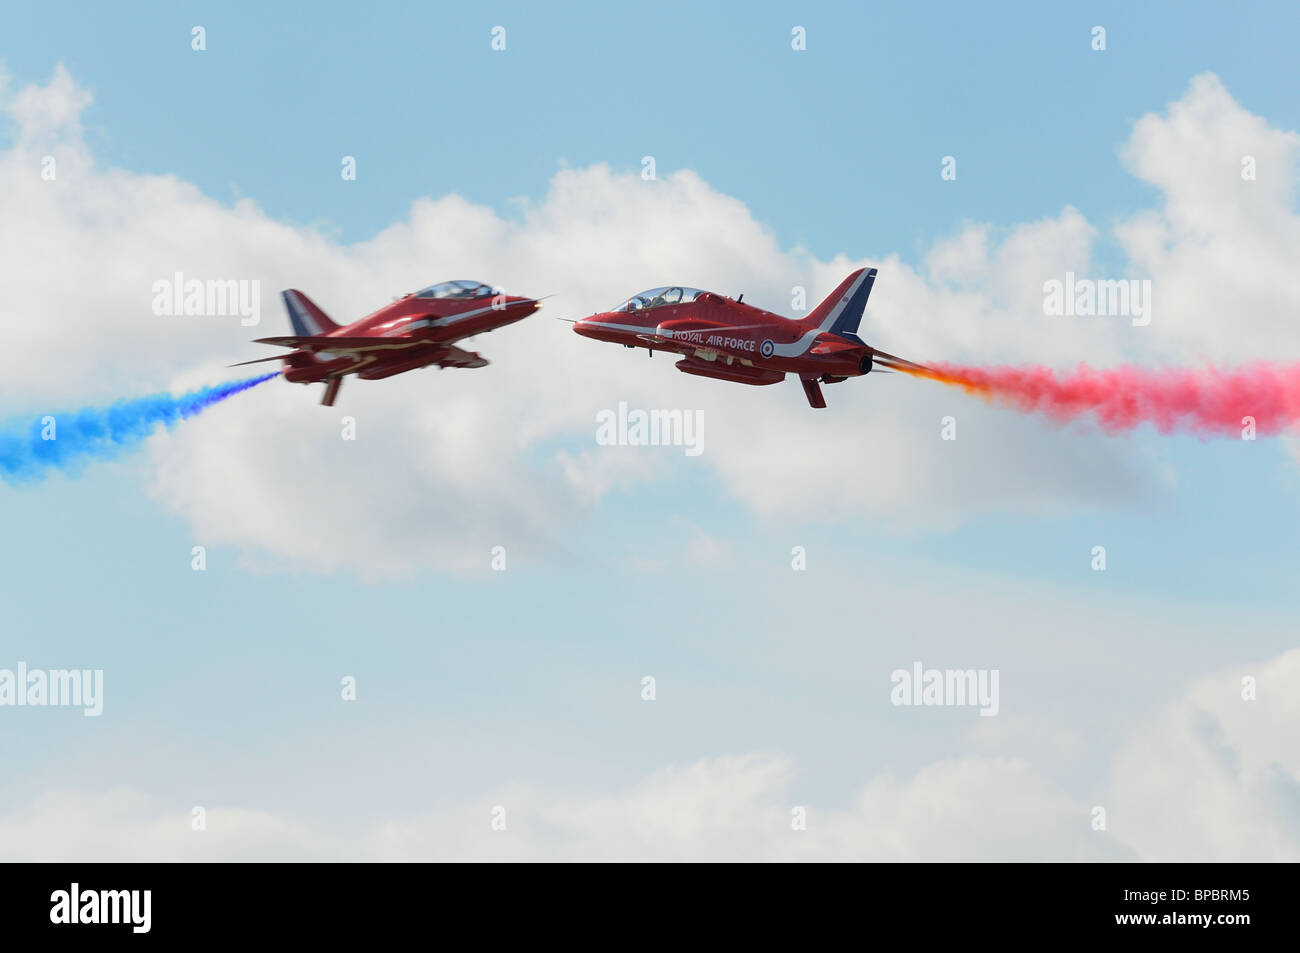 The British Royal Air Force Red Arrows Aerobatic Display Team thrill at the 2010 RIAT Royal International Air Tattoo - Stock Image